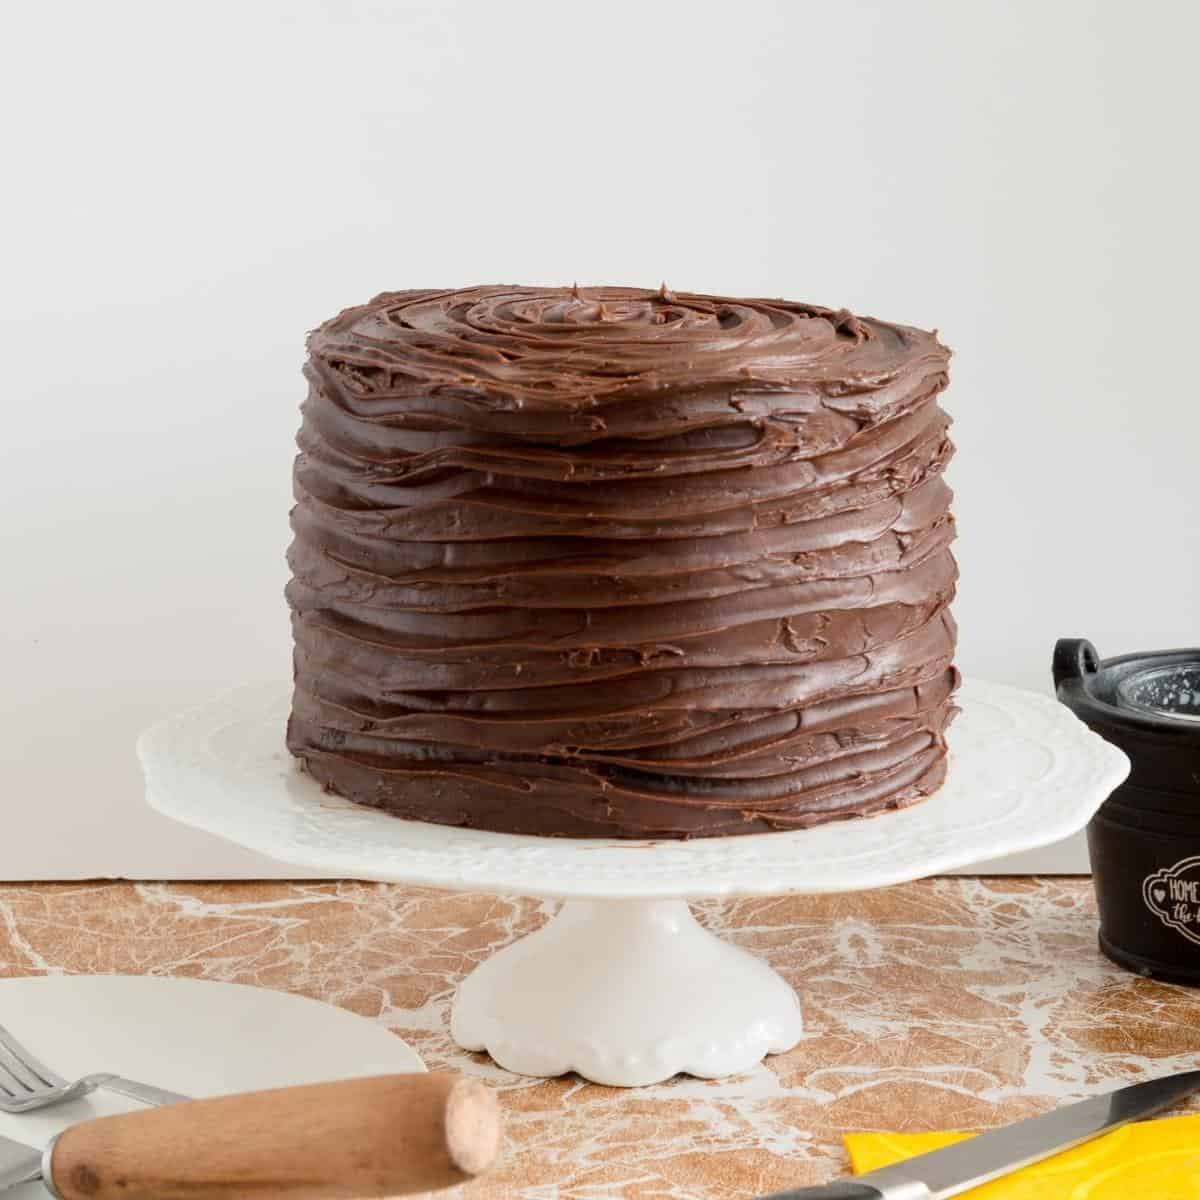 Chocolate cake frosted with ganache on cake stand.